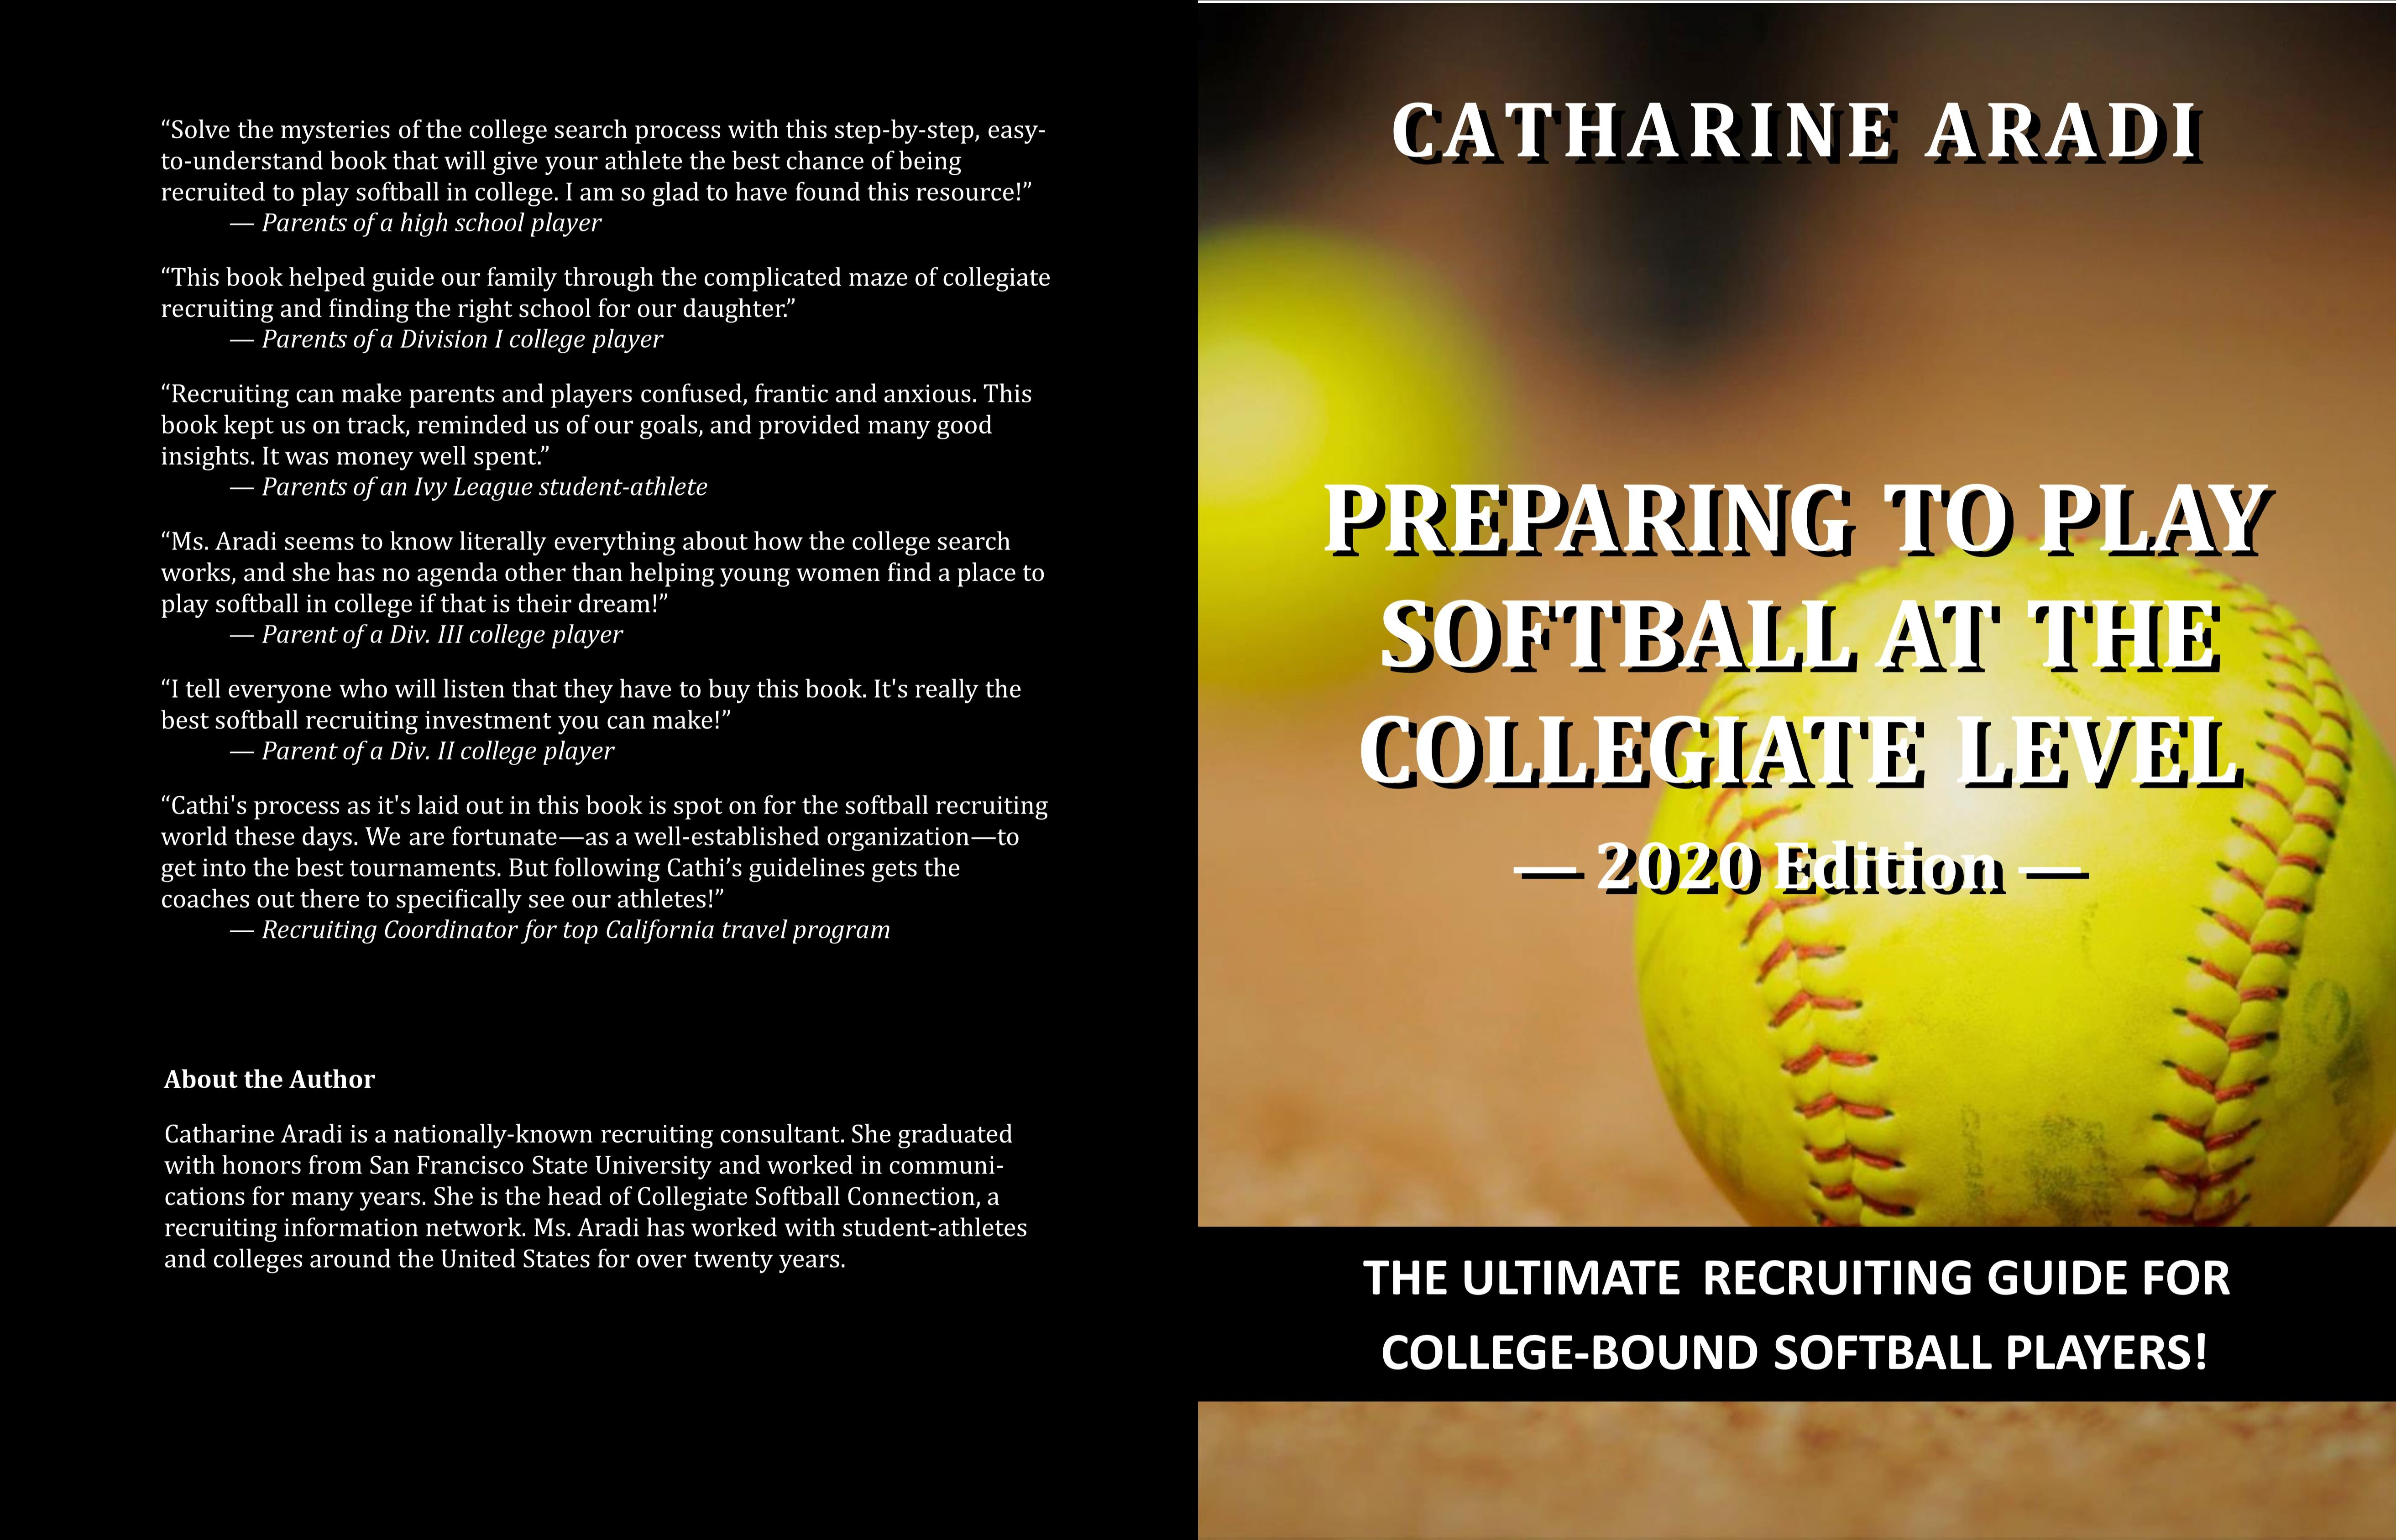 Preparing to Play Softball at the Collegiate Level — 2020 Edition cover image